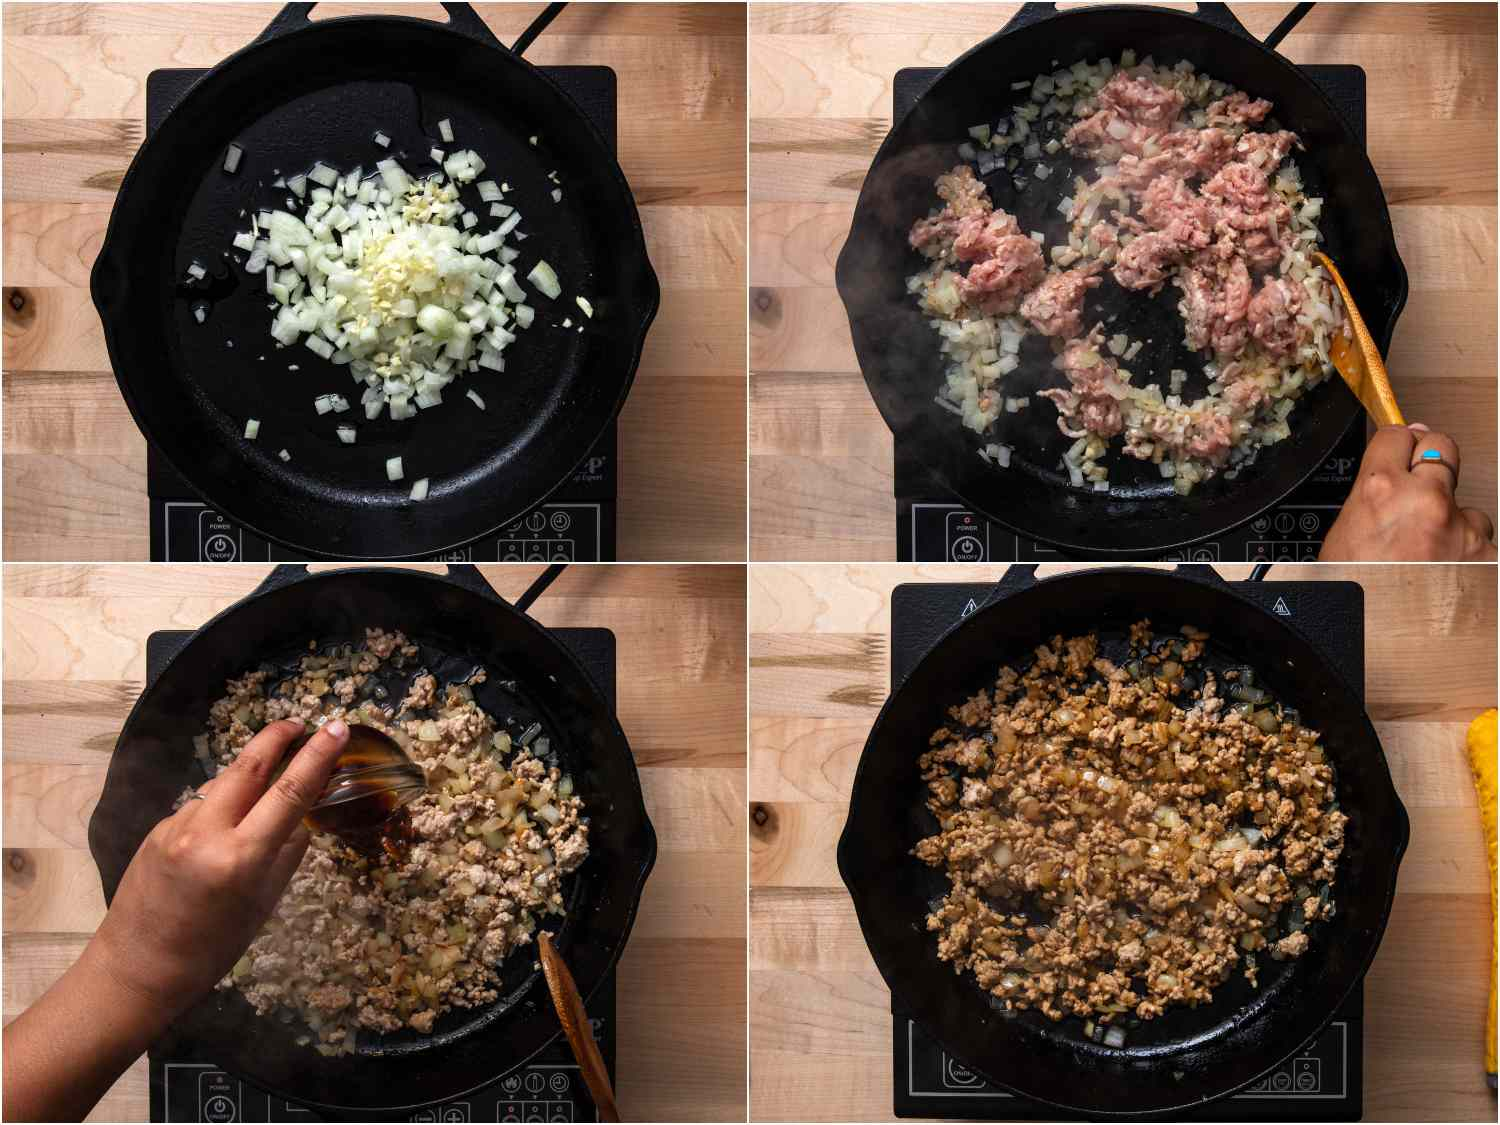 collage: onions and garlic cooking; ground pork added; soy sauce being poured in; everything mixed, combined, and browned